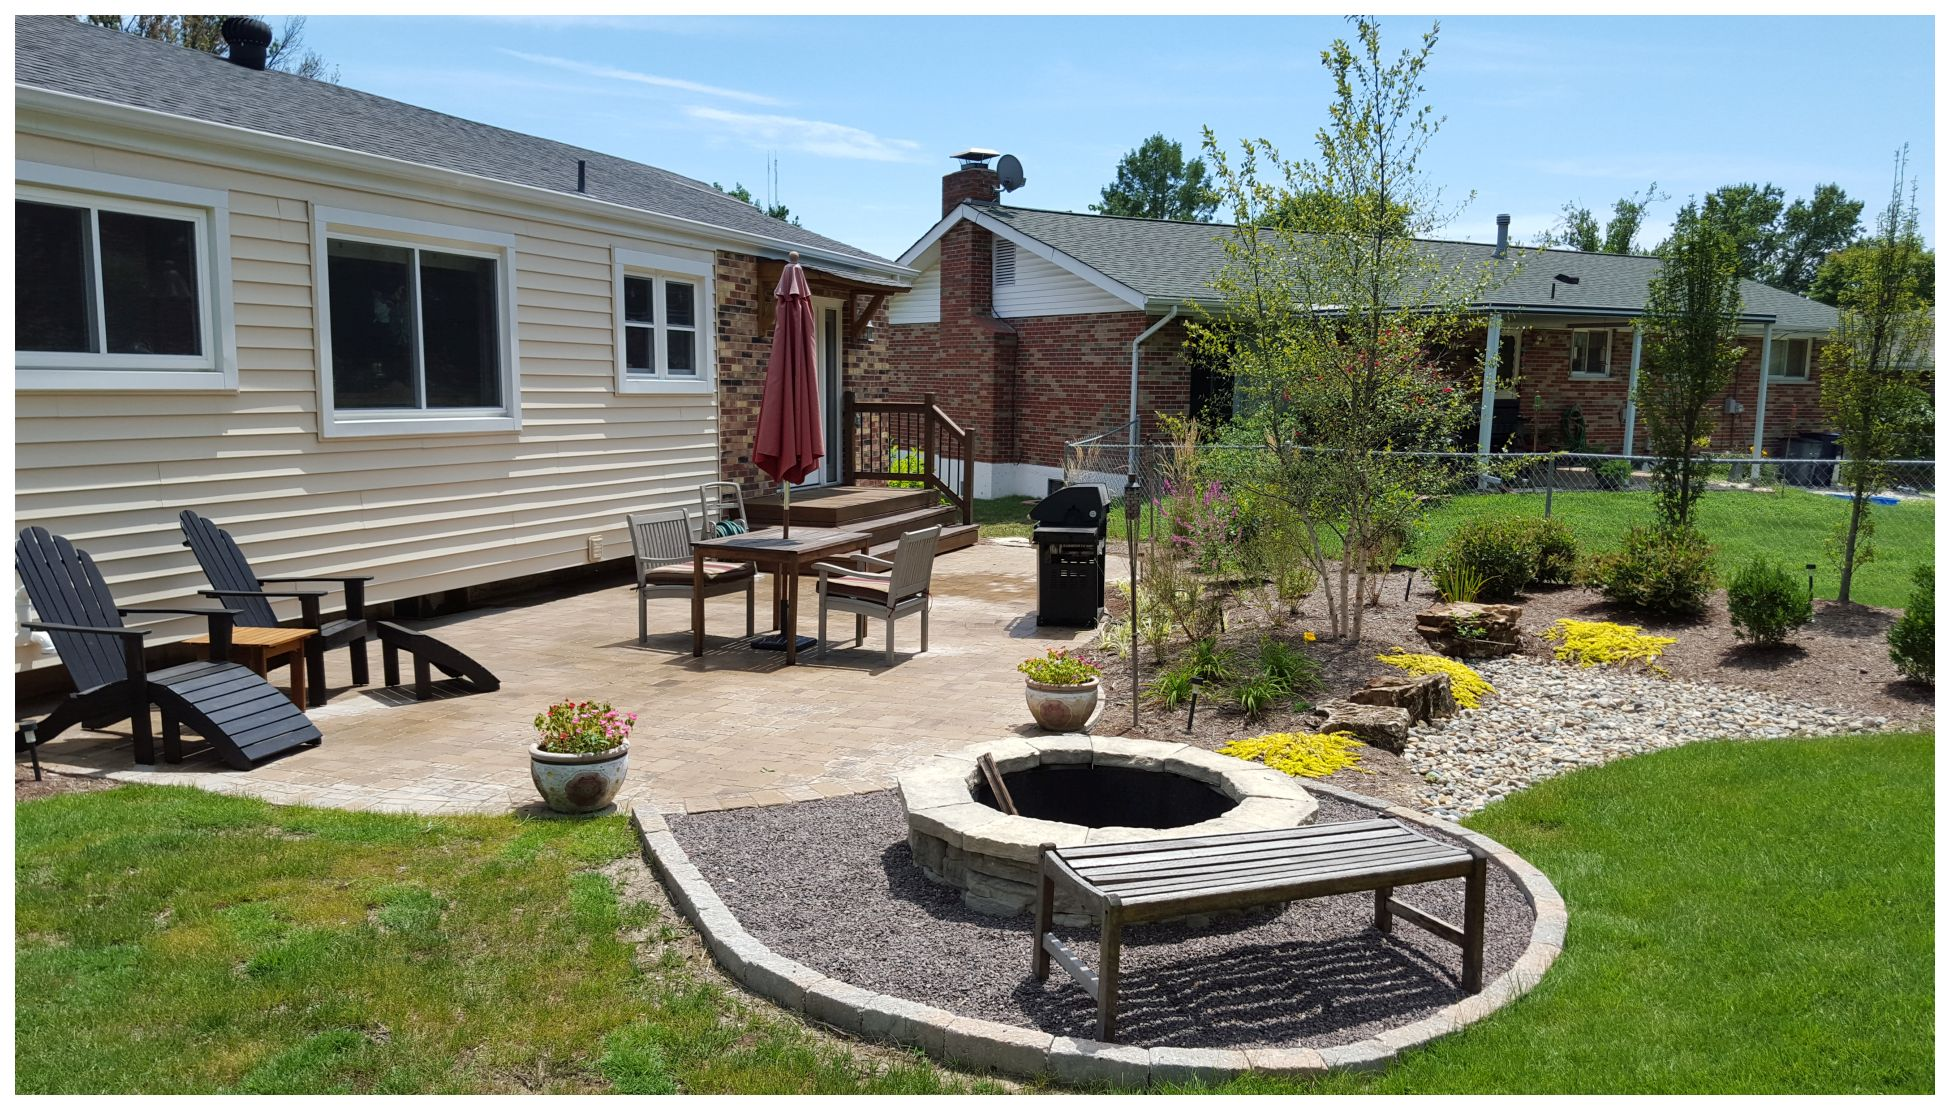 Backyard Paver Patio With Firepit on Pavers Patio With Fire Pit id=66815